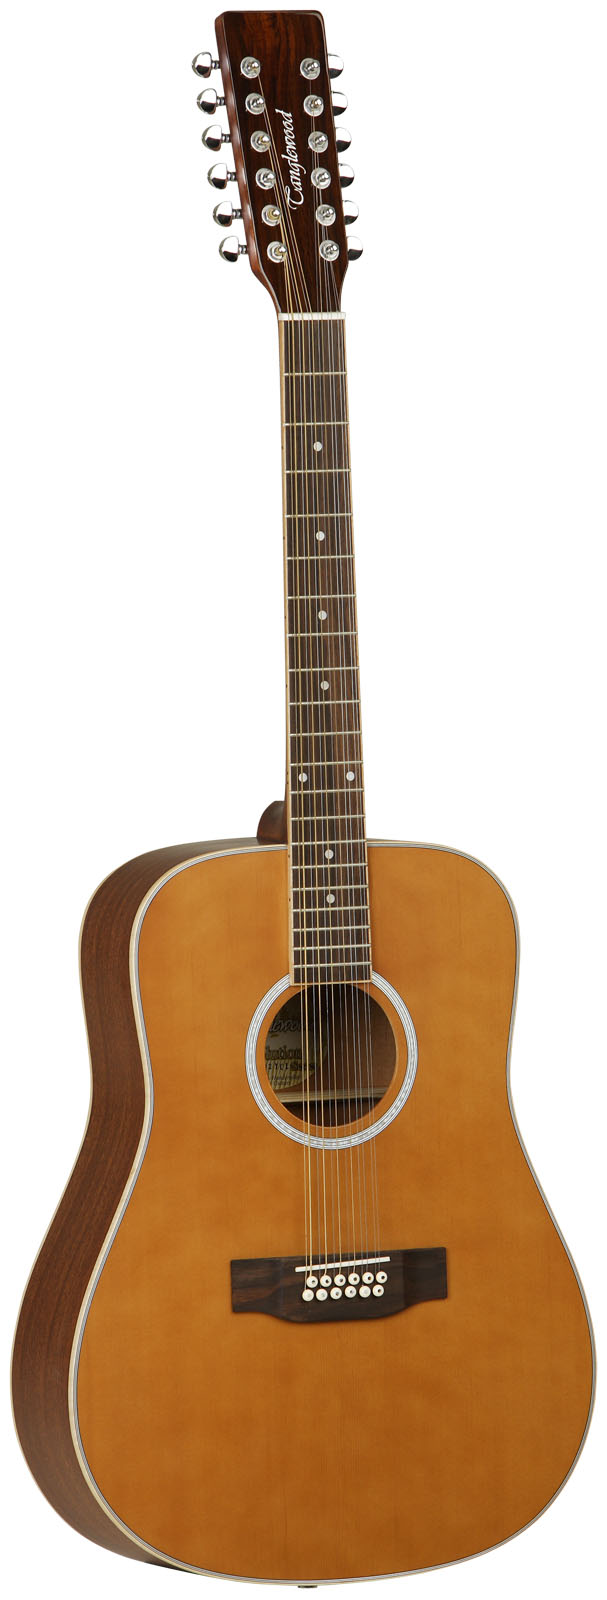 tanglewood evolution tw28 cln 12 string acoustic guitar discount music center orlando. Black Bedroom Furniture Sets. Home Design Ideas